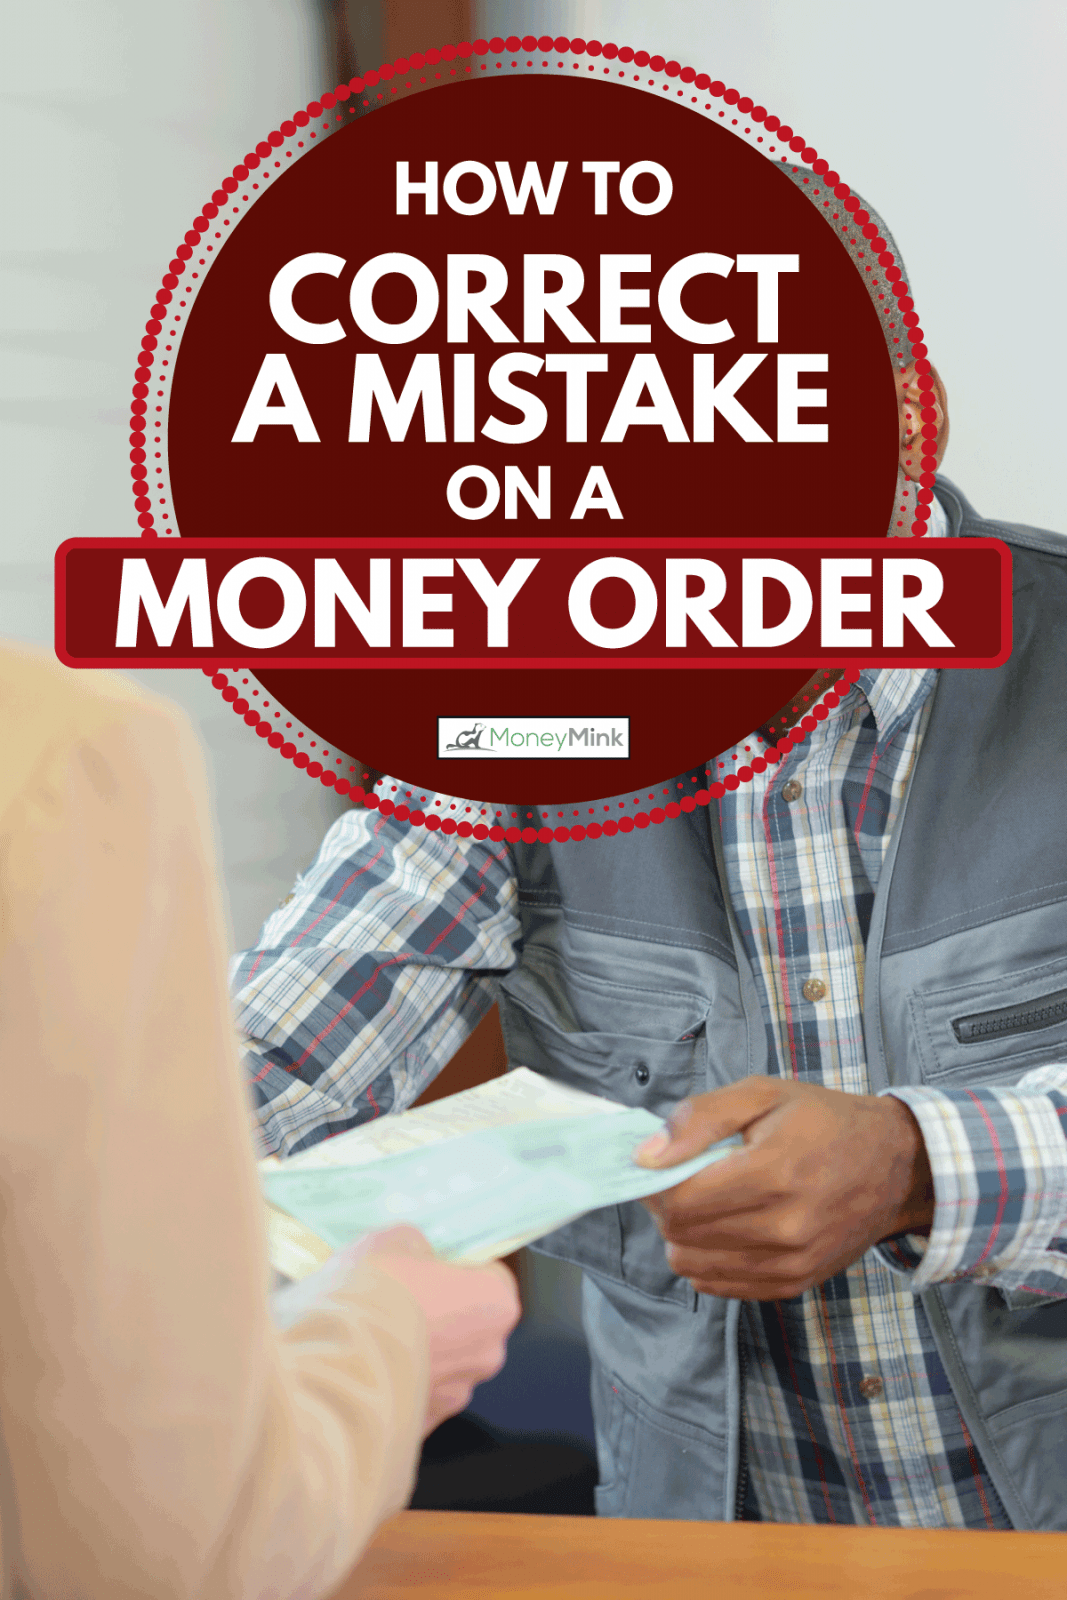 A woman handing a money order form and check to a man wearing grey vest on checkered long sleeve top, How To Correct A Mistake On A Money Order